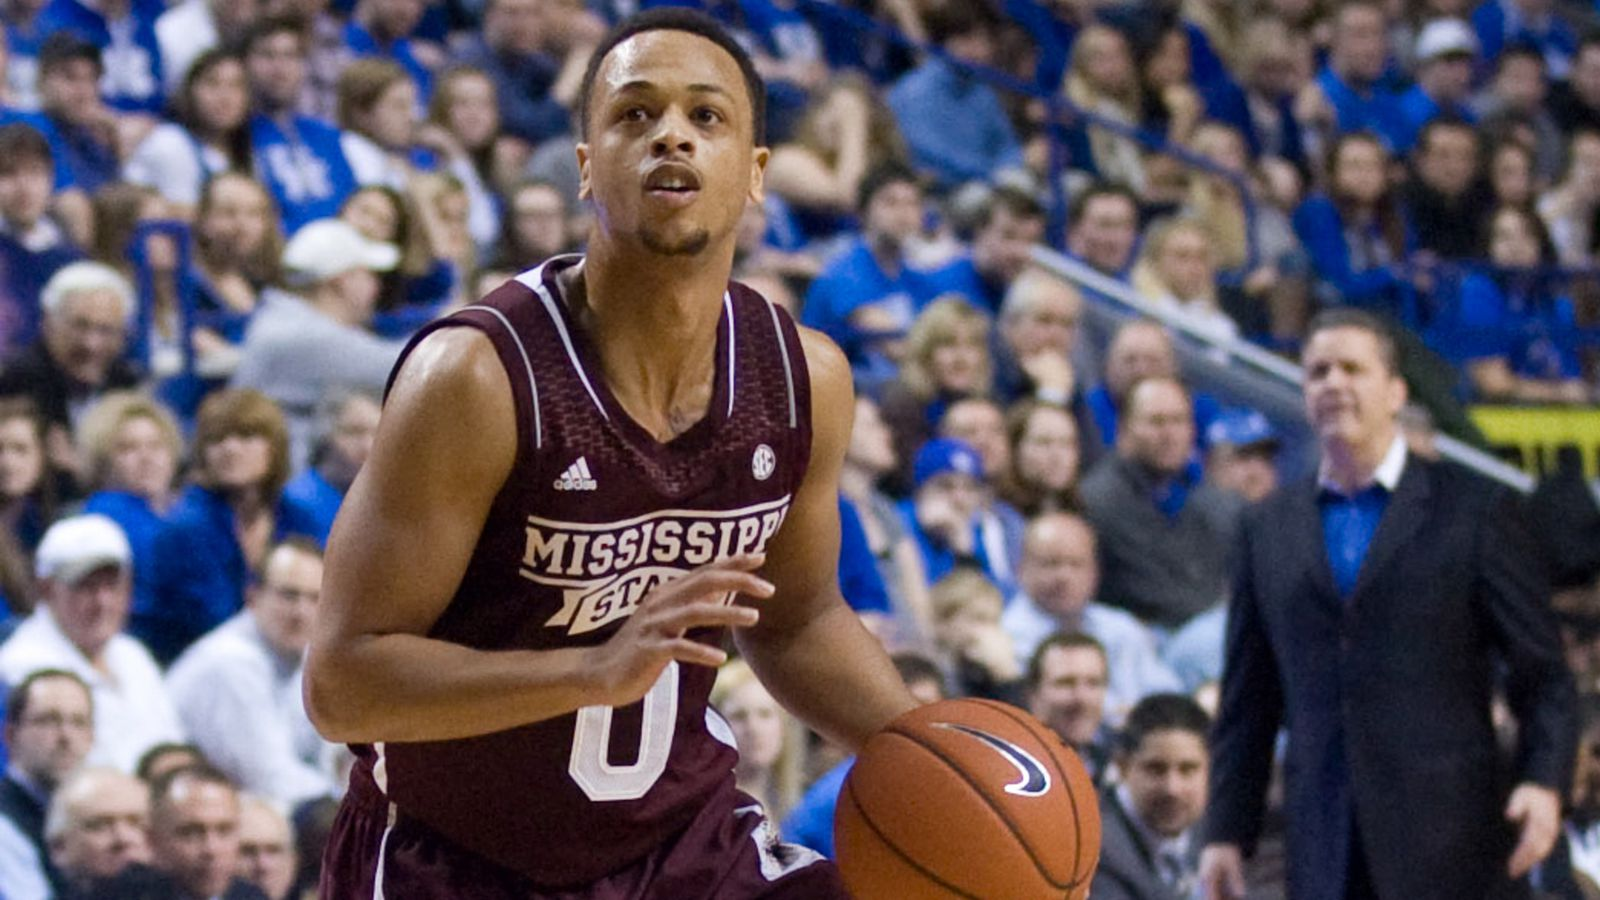 Mississippi State Player Hurt >> Jalen Steele injury: Mississippi State guard tears ACL - SBNation.com